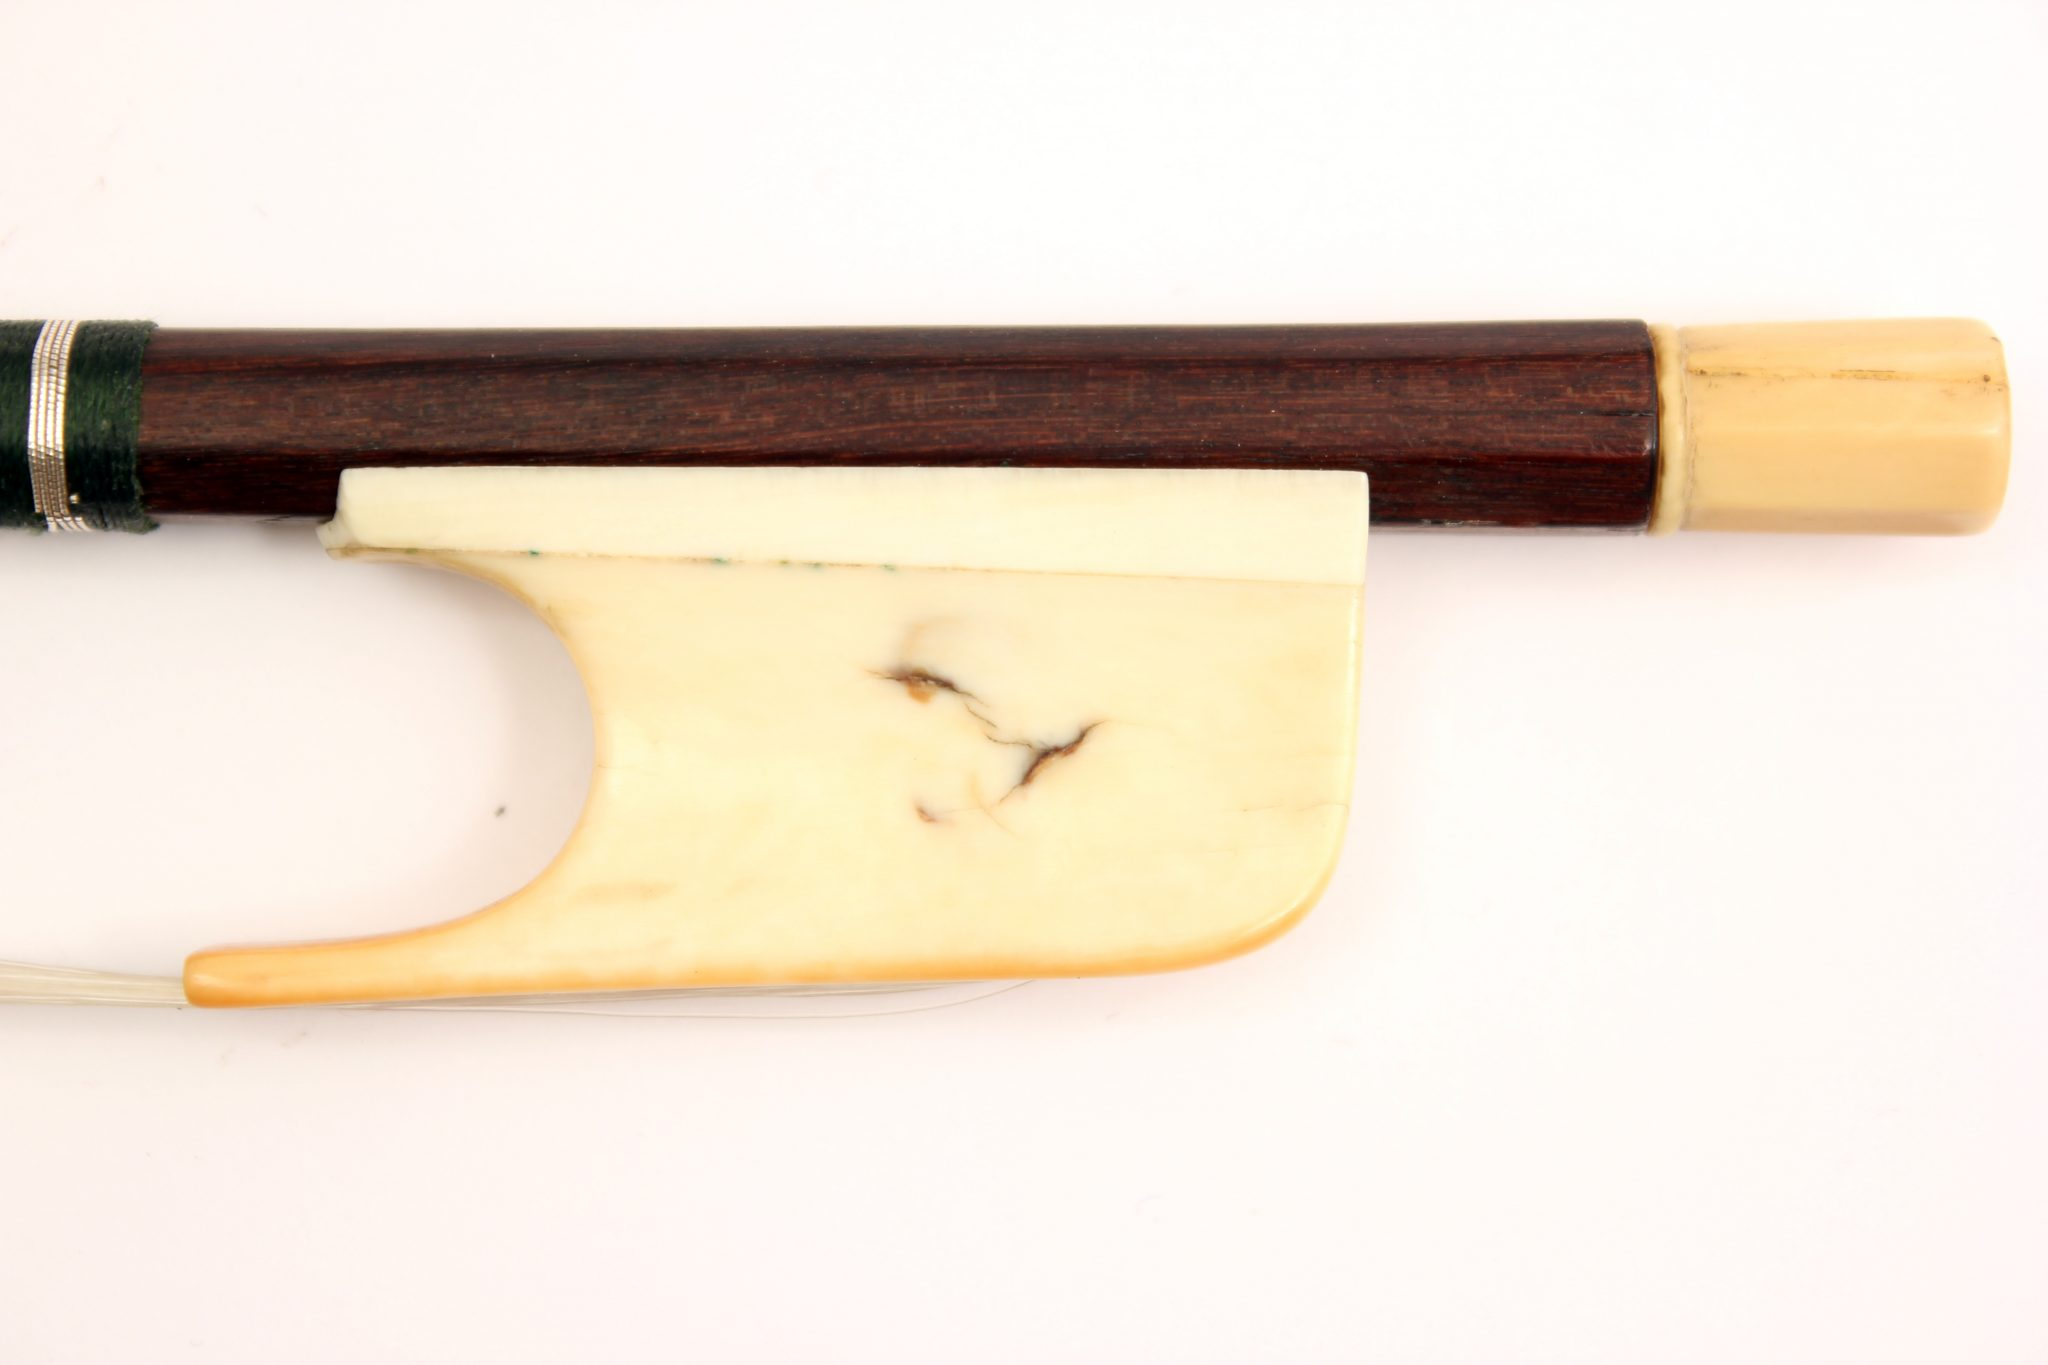 Baroque Transitional Violin bow by John Dodd for sale By Bridgewood and Neitzert London